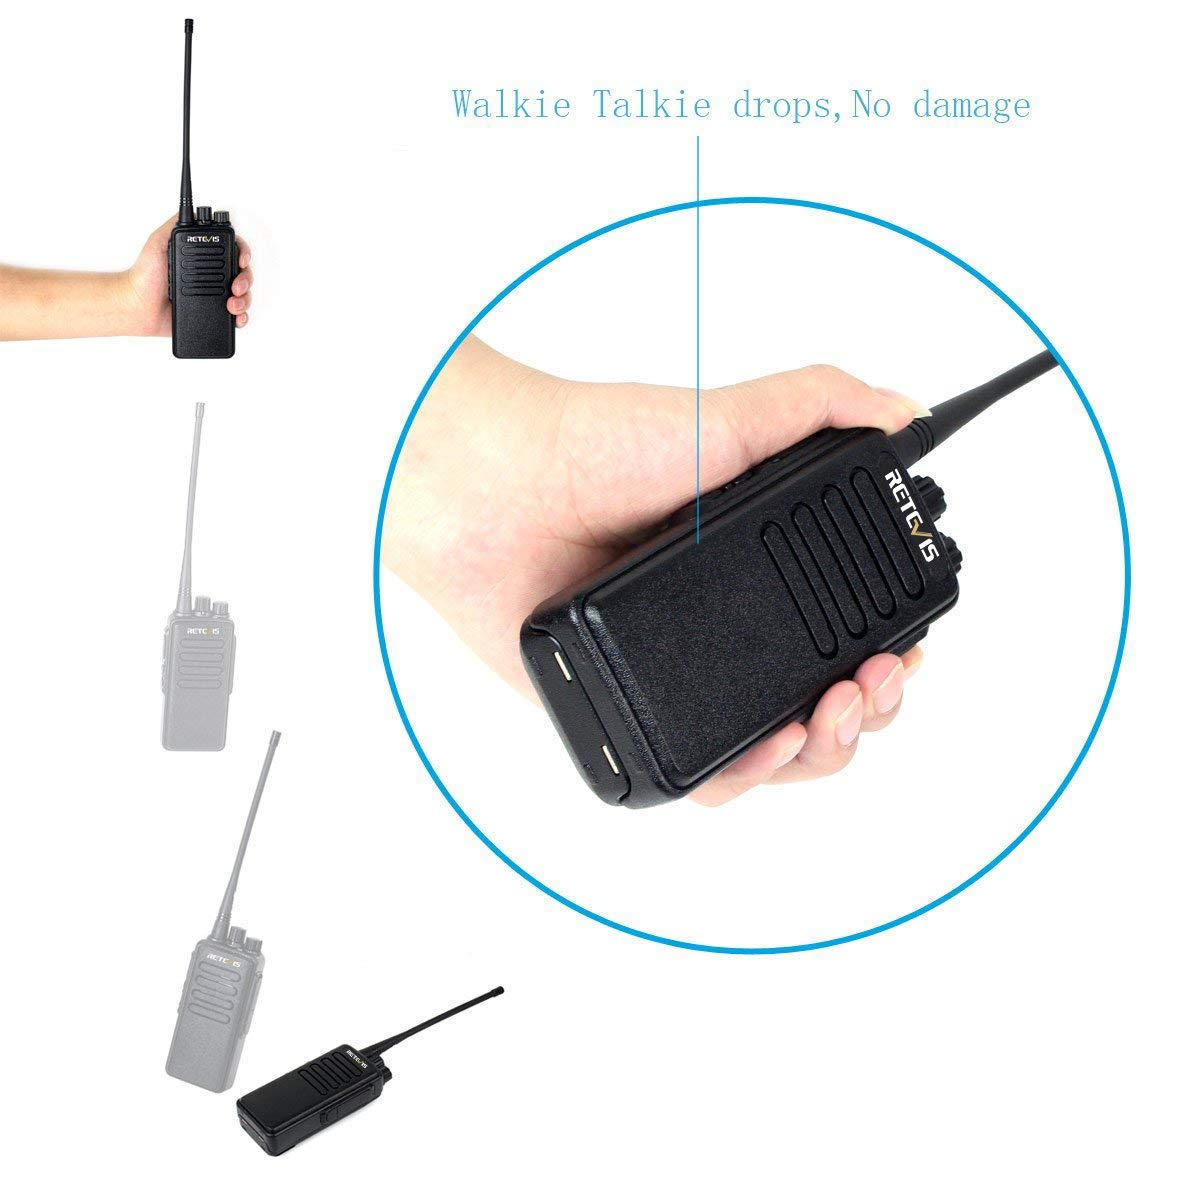 Retevis RT1 High-Power UHF Rechargeable Two-Way Radio 70CM 16CH VOX Scrambler Handheld Transceiver with Earpiece and Speaker Mic 2 Pack LYSB00PJXLX4U-SPRTSEQIP